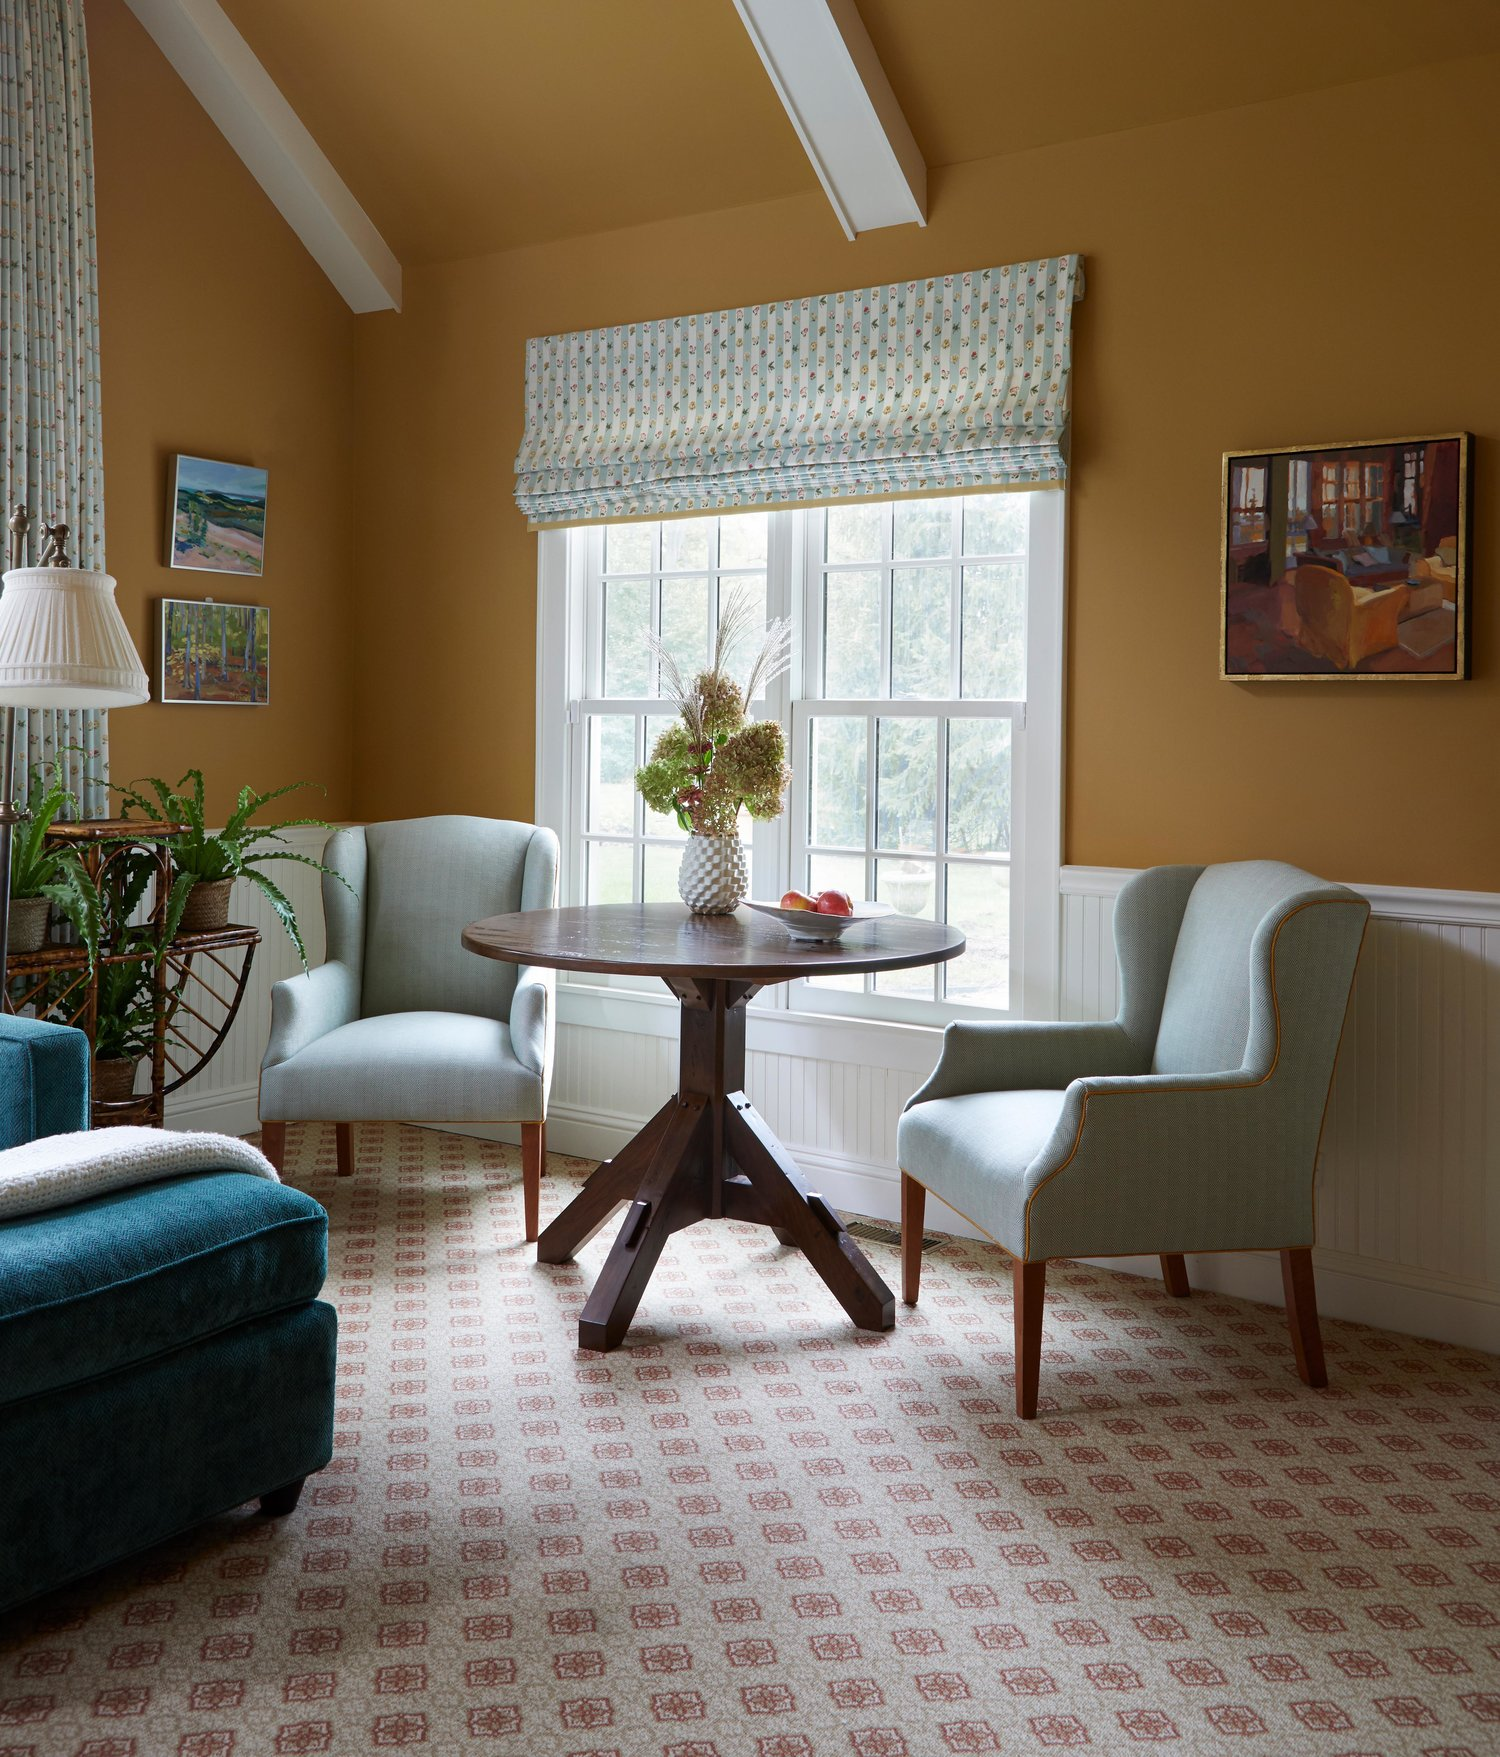 Wing chairs in a cozy family room.  Come see more interior design inspiration from Elizabeth Drake. Photo by Werner Straube. #interiordesign #classicdesign #traditionaldecor #housetour #elizabethdrake